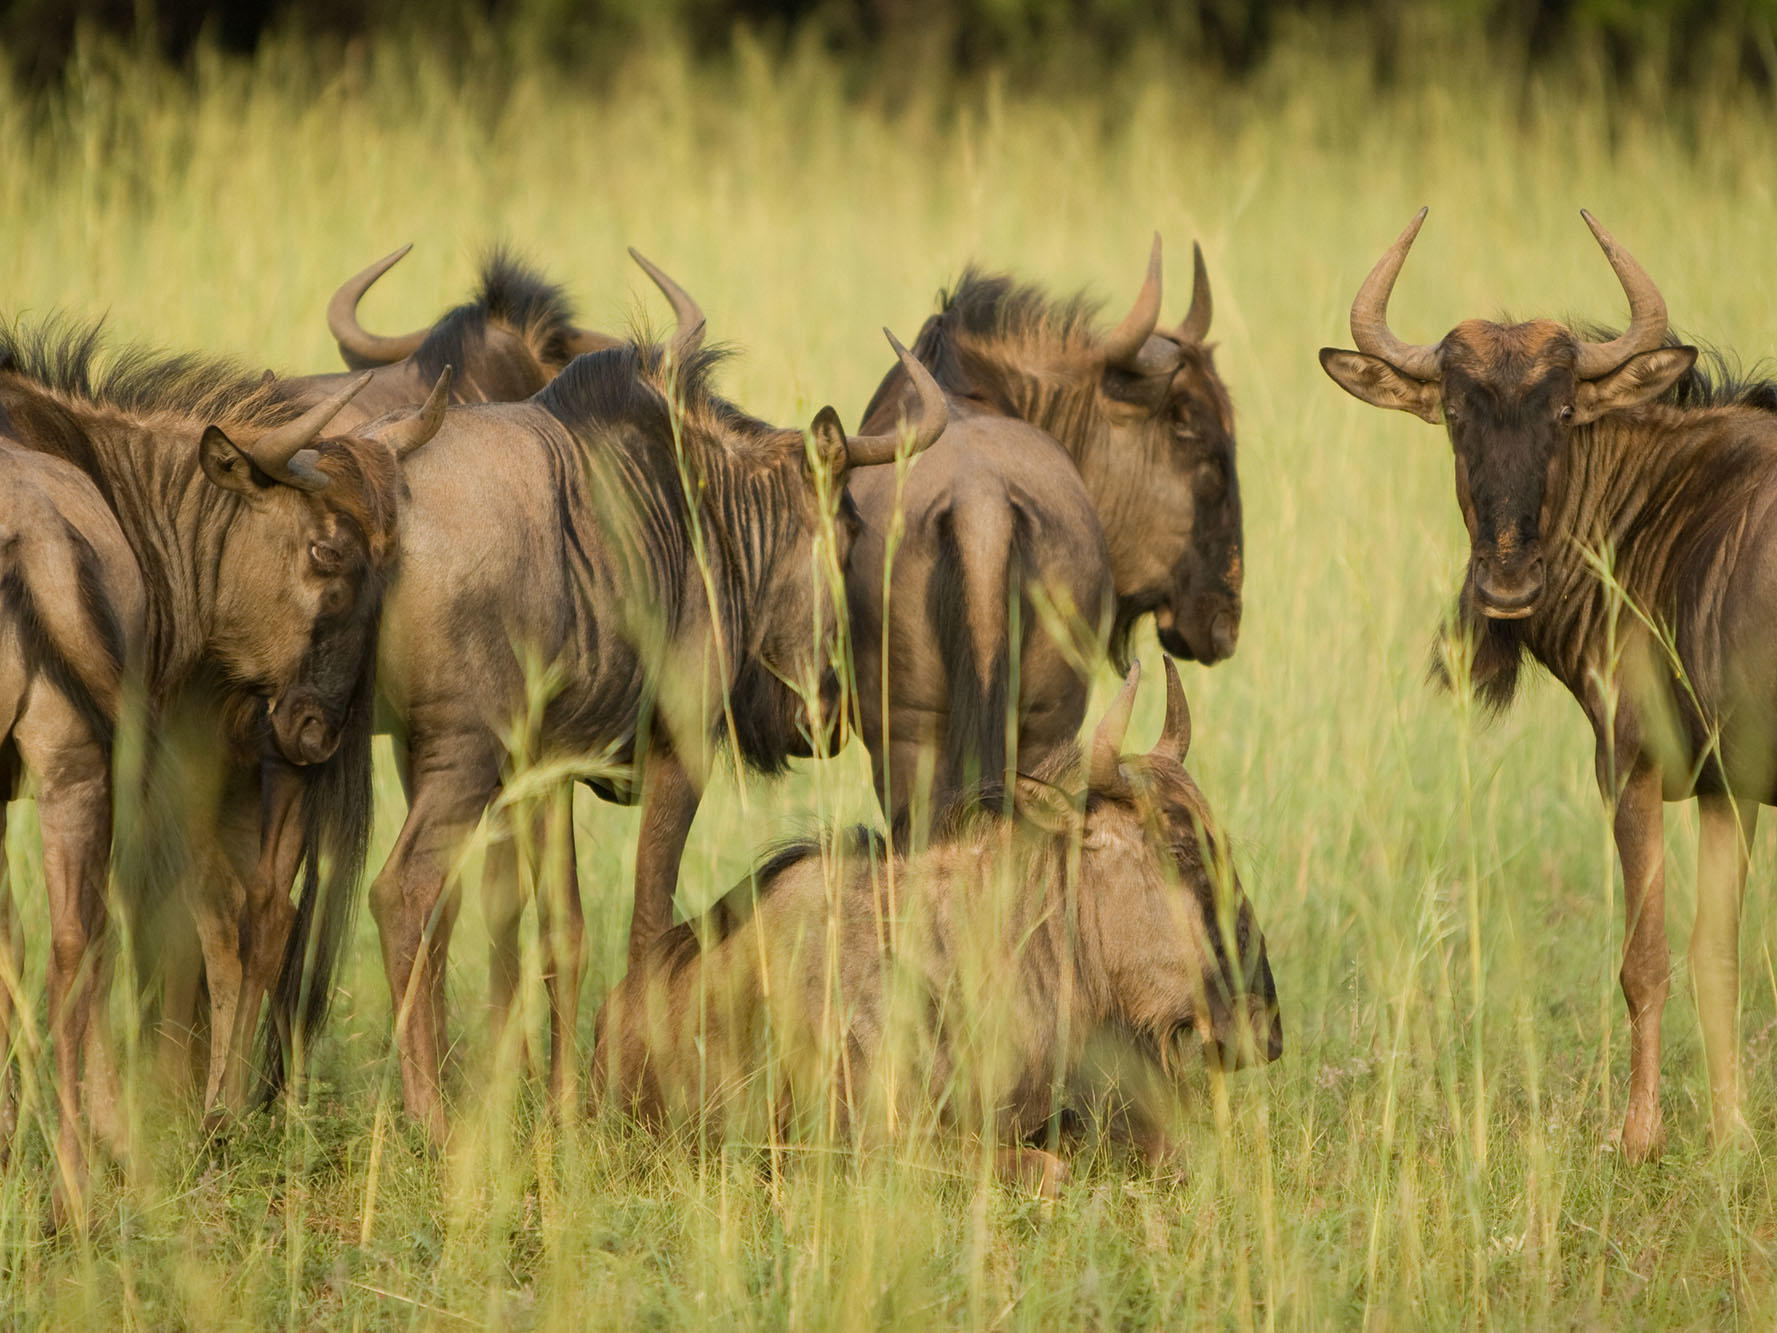 Group of Wildebeests